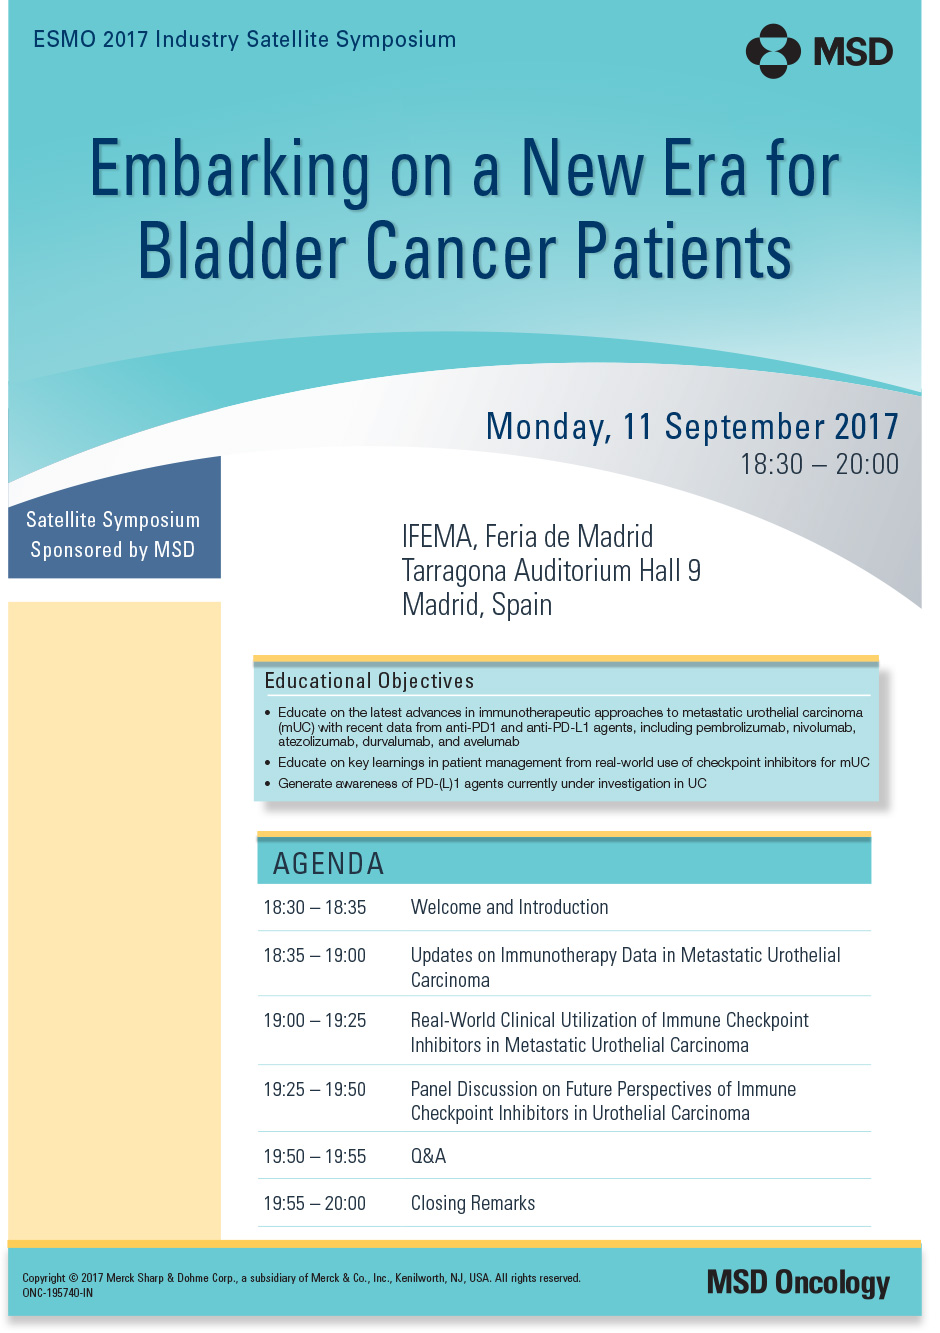 Embarking on a New Era for Bladder Cancer Patients